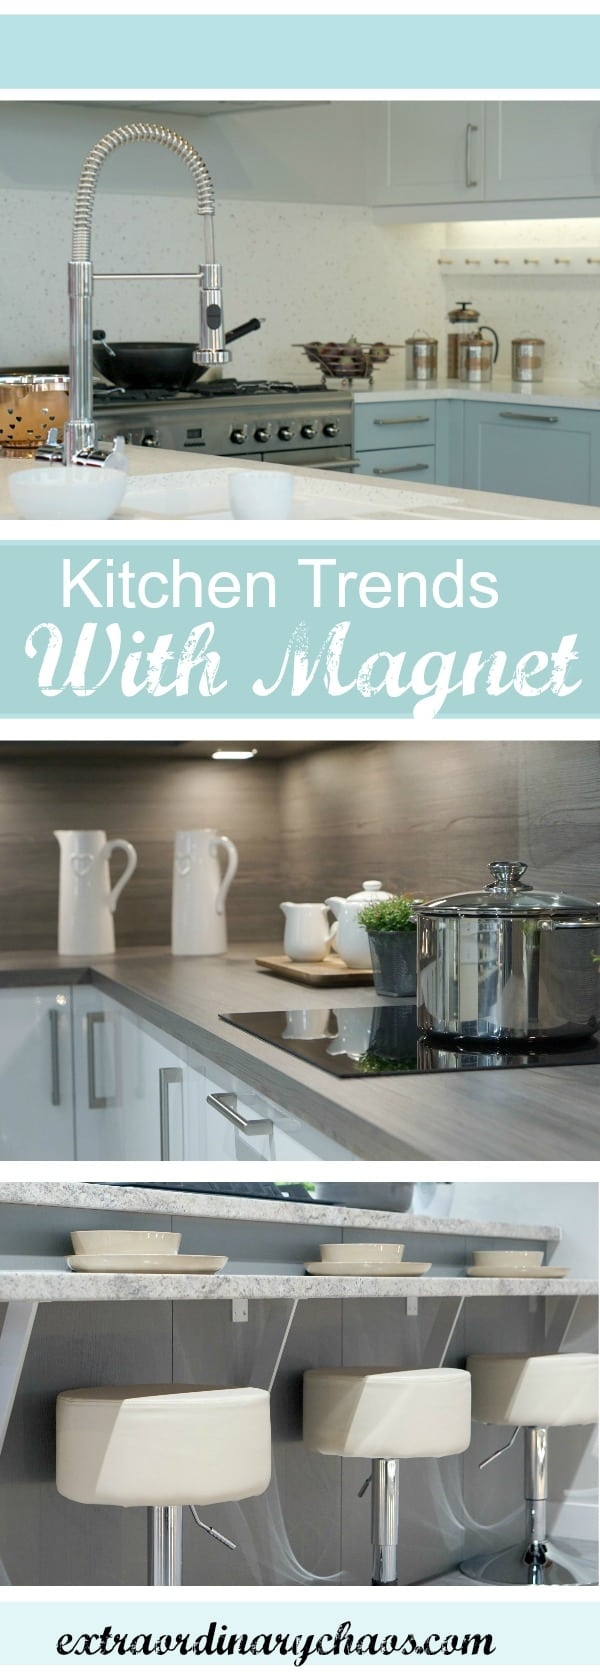 Thinking of a new kitchen or adding a kitchen Island, creating better storage. Then check out the Latest Kitchen Trends and Storage Solutions With Magnet.